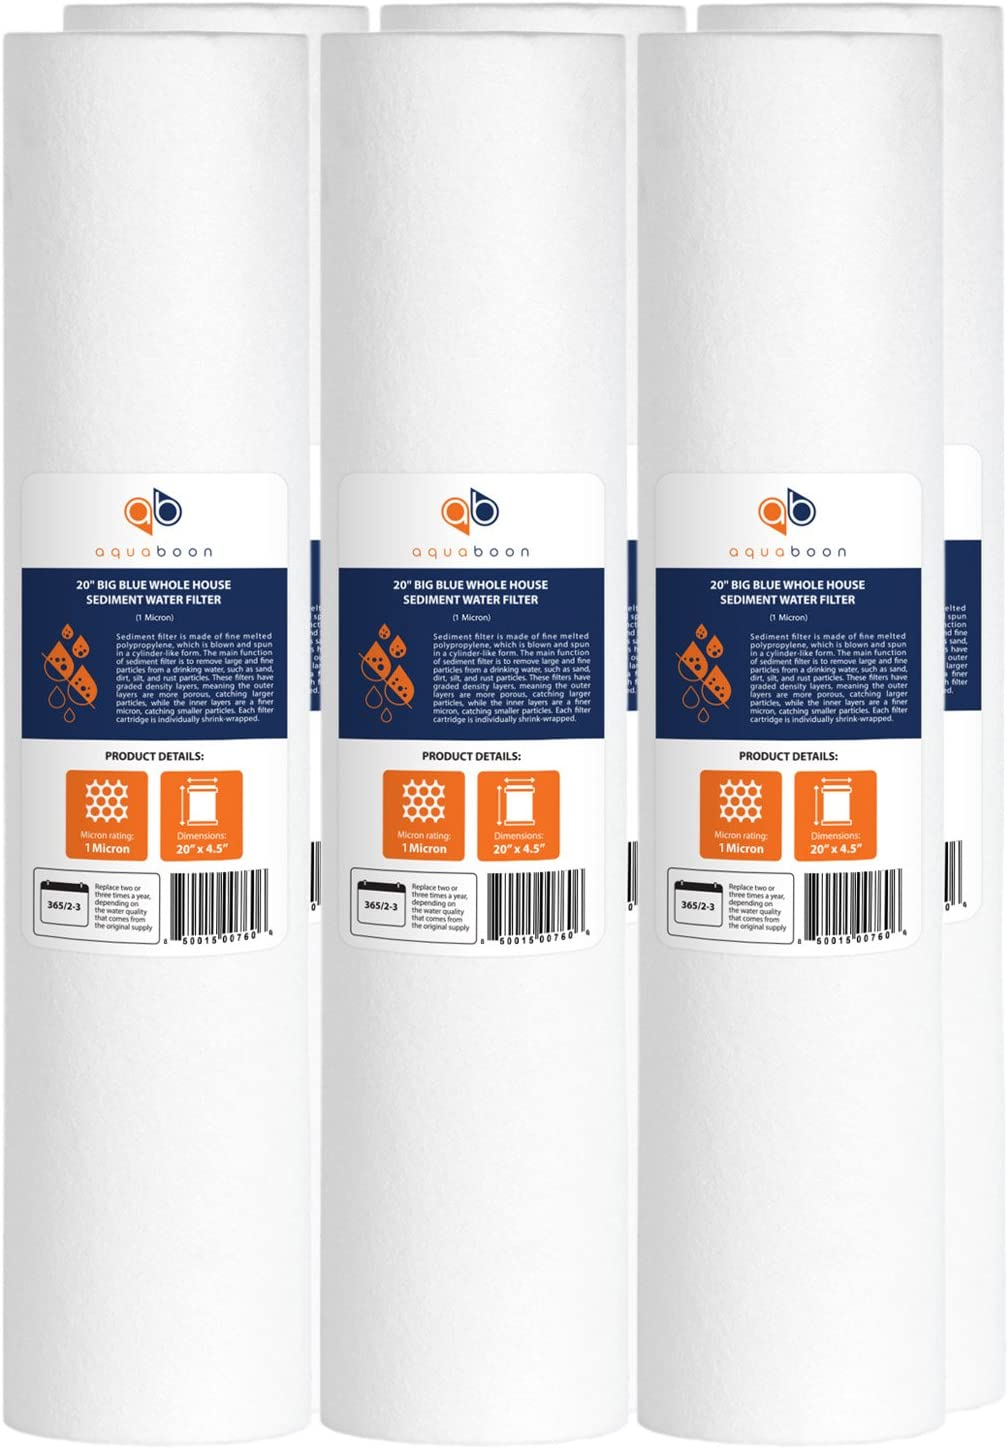 """Aquaboon 1 Micron 20"""" Big Blue Sediment Water Filter Replacement Cartridge 